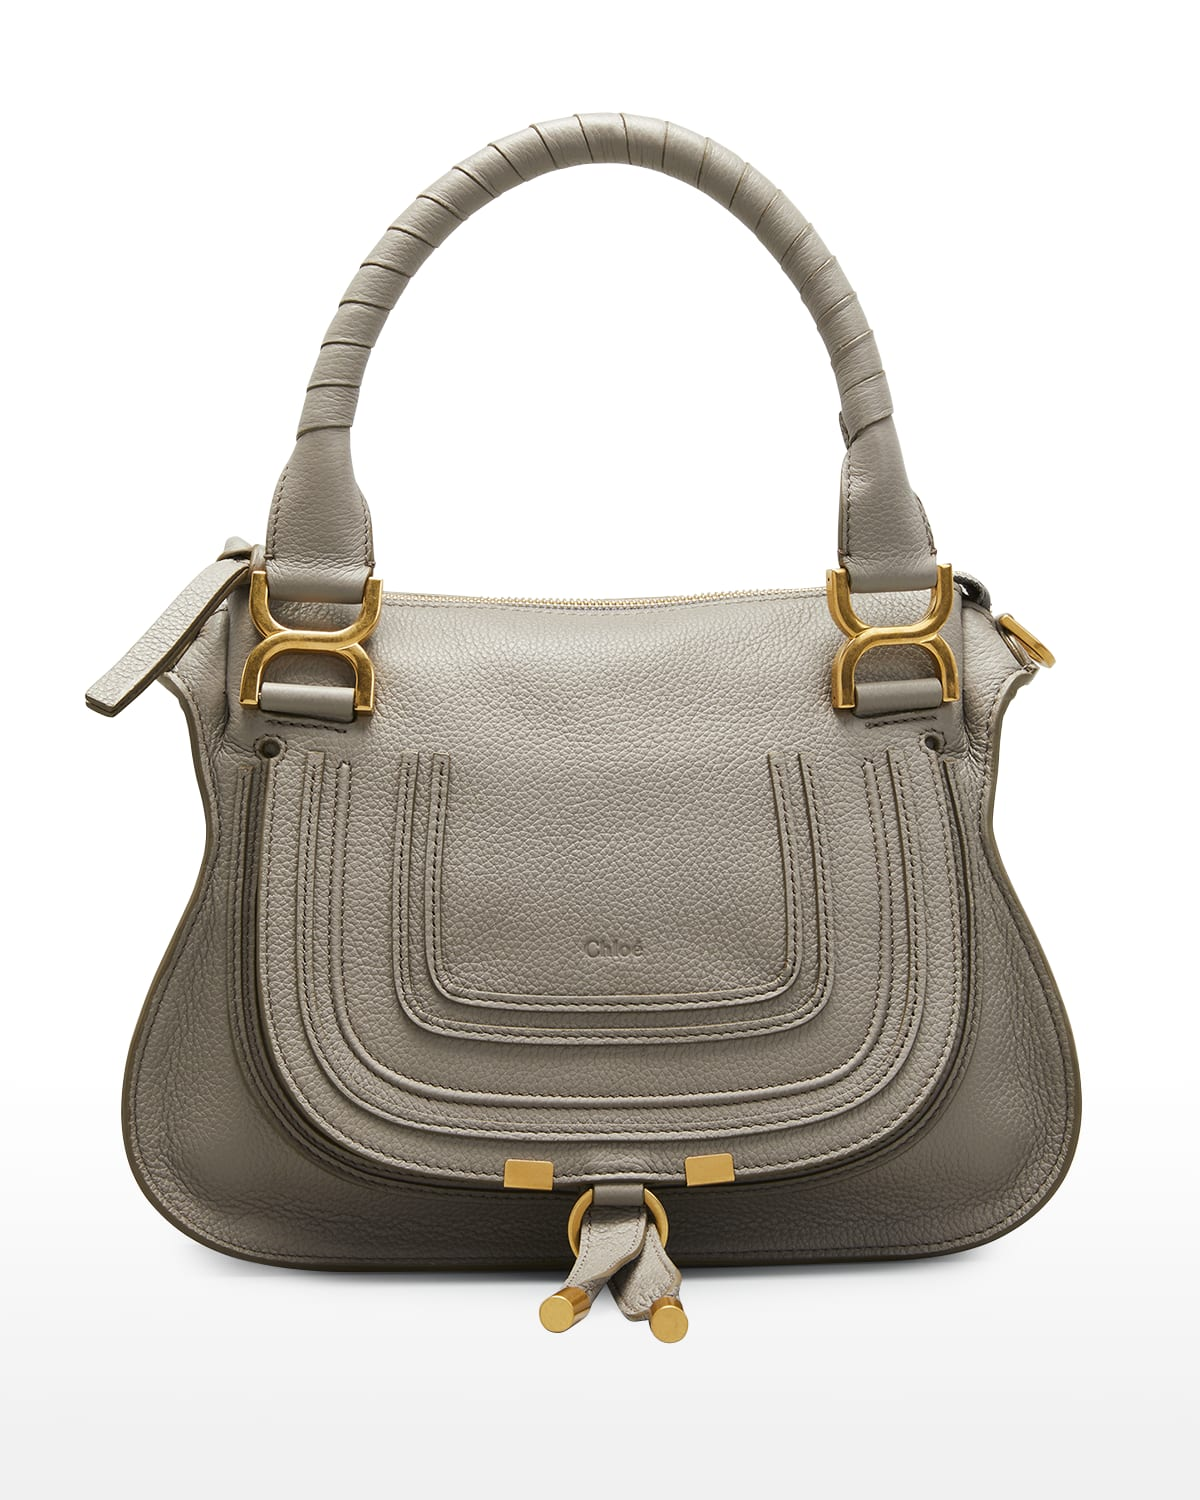 Marcie Small Leather Satchel Bag